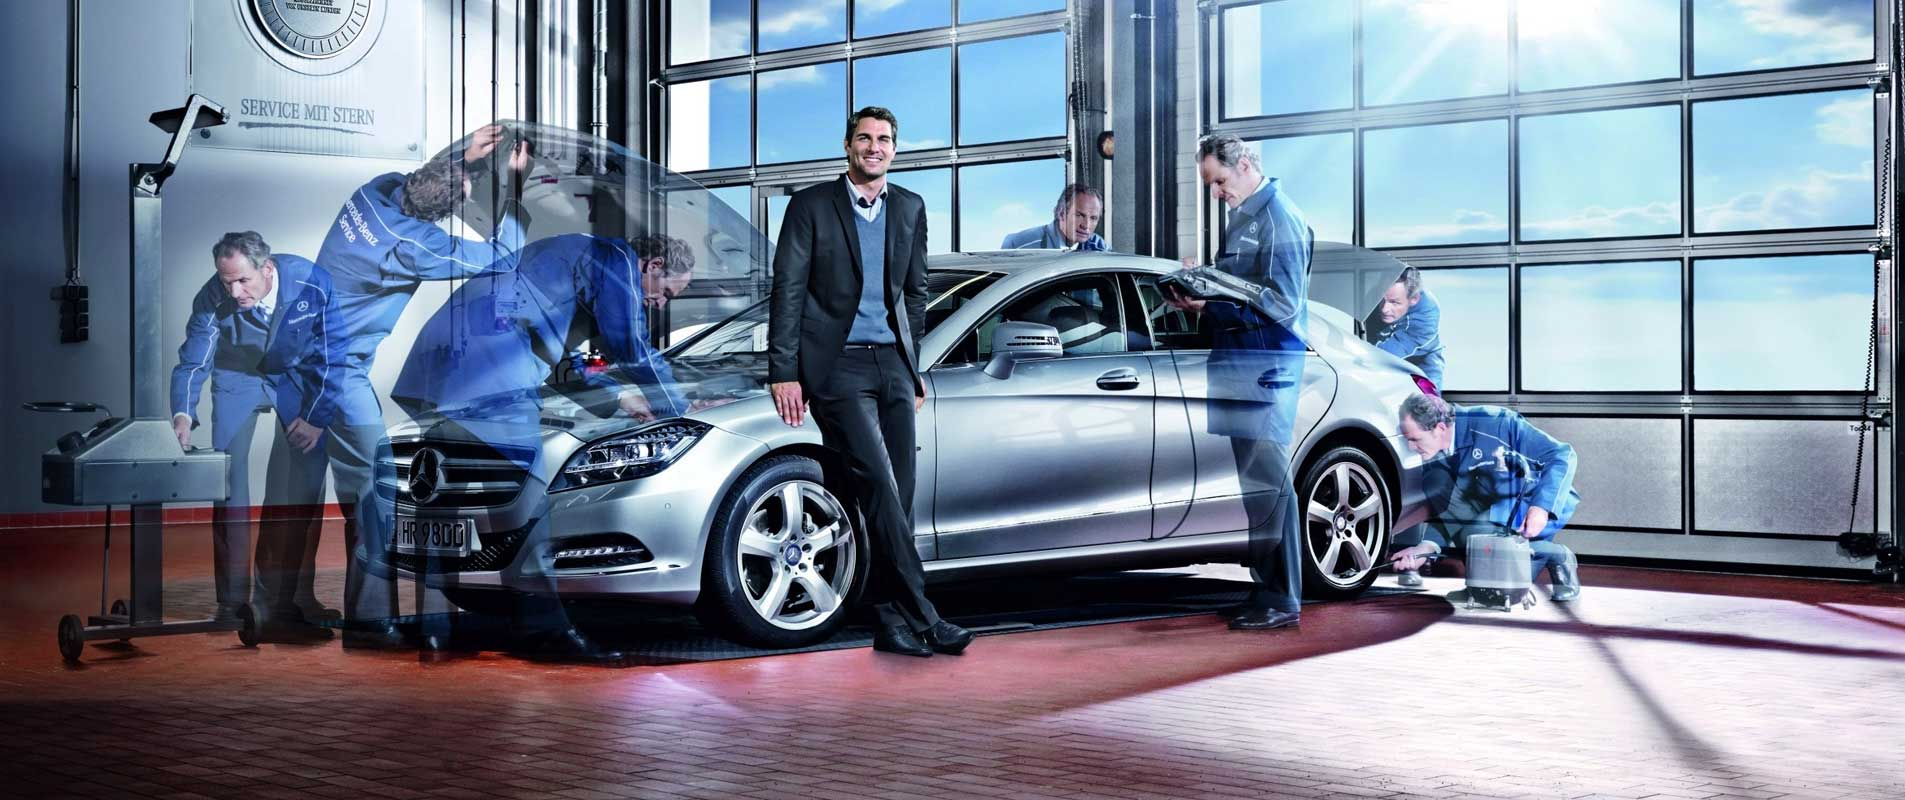 Captivating World Class Service For Your Mercedes Benz